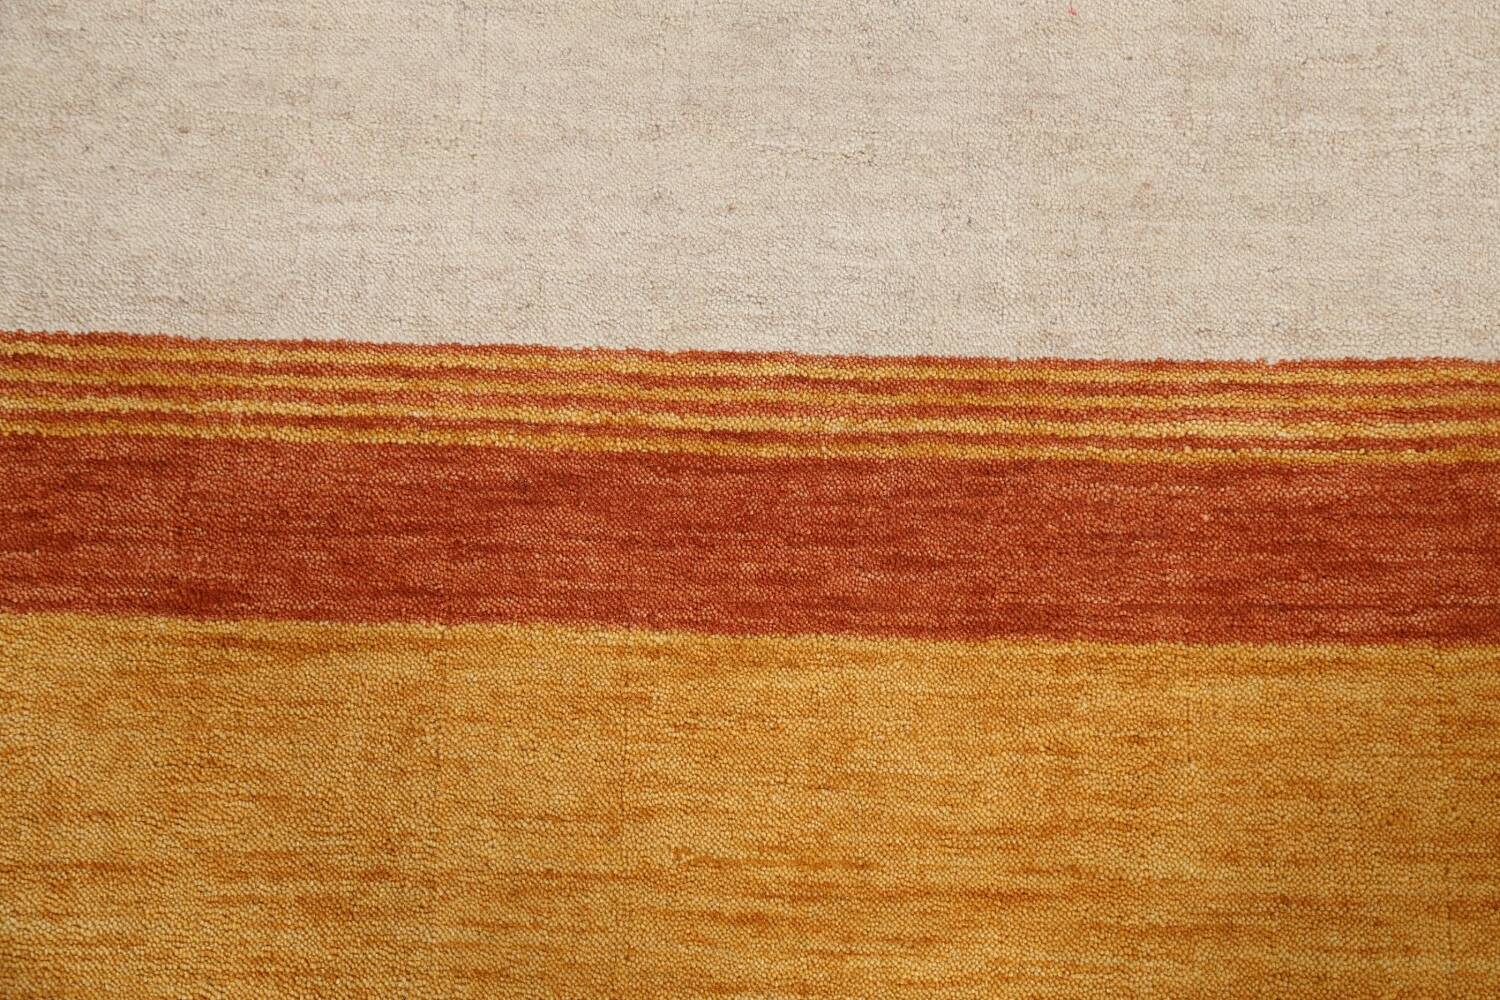 Contemporary Gabbeh Wool Area Rug 7x10 image 10